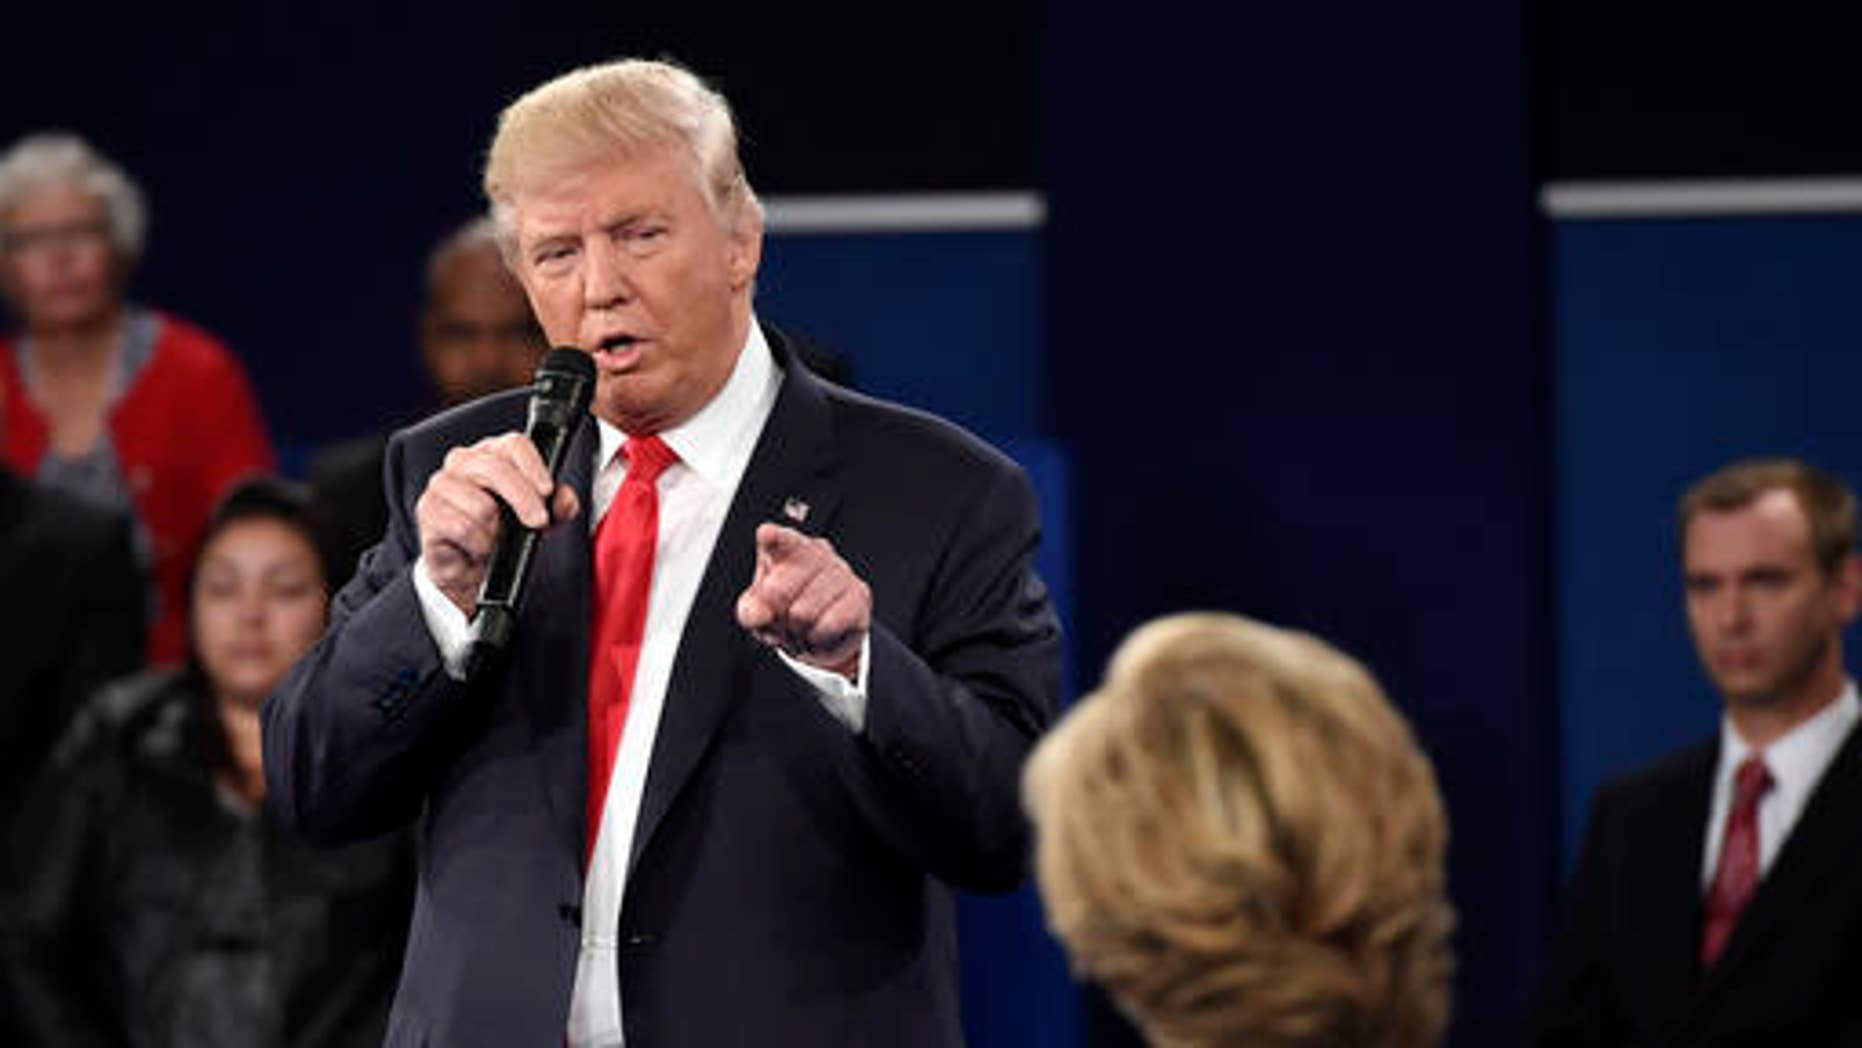 FILE - Republican presidential nominee Donald Trump points at Democratic presidential nominee Hillary Clinton as he speaks during the second presidential debate at Washington University in St. Louis, Sunday, Oct. 9, 2016.